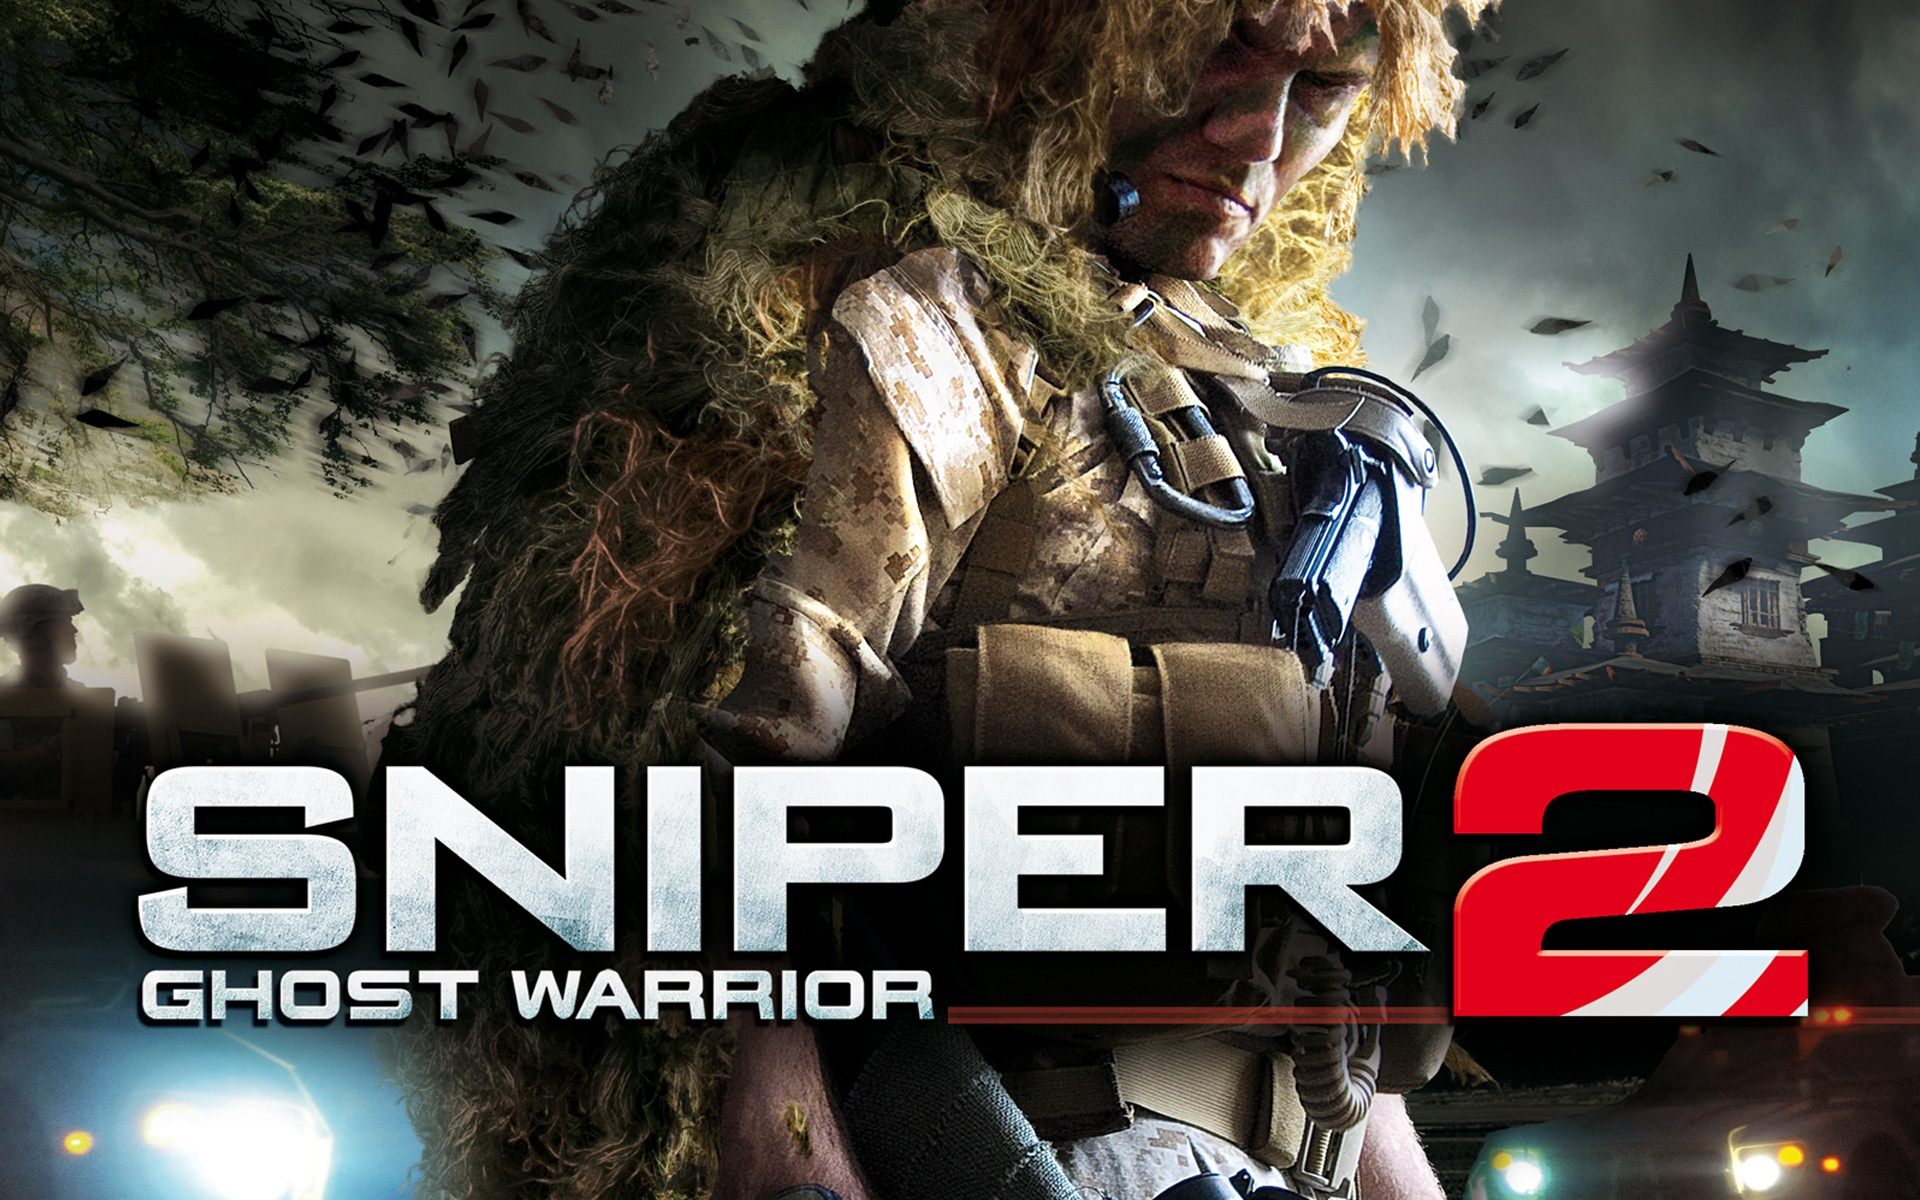 Sniper Ghost Warrior 2 – PC